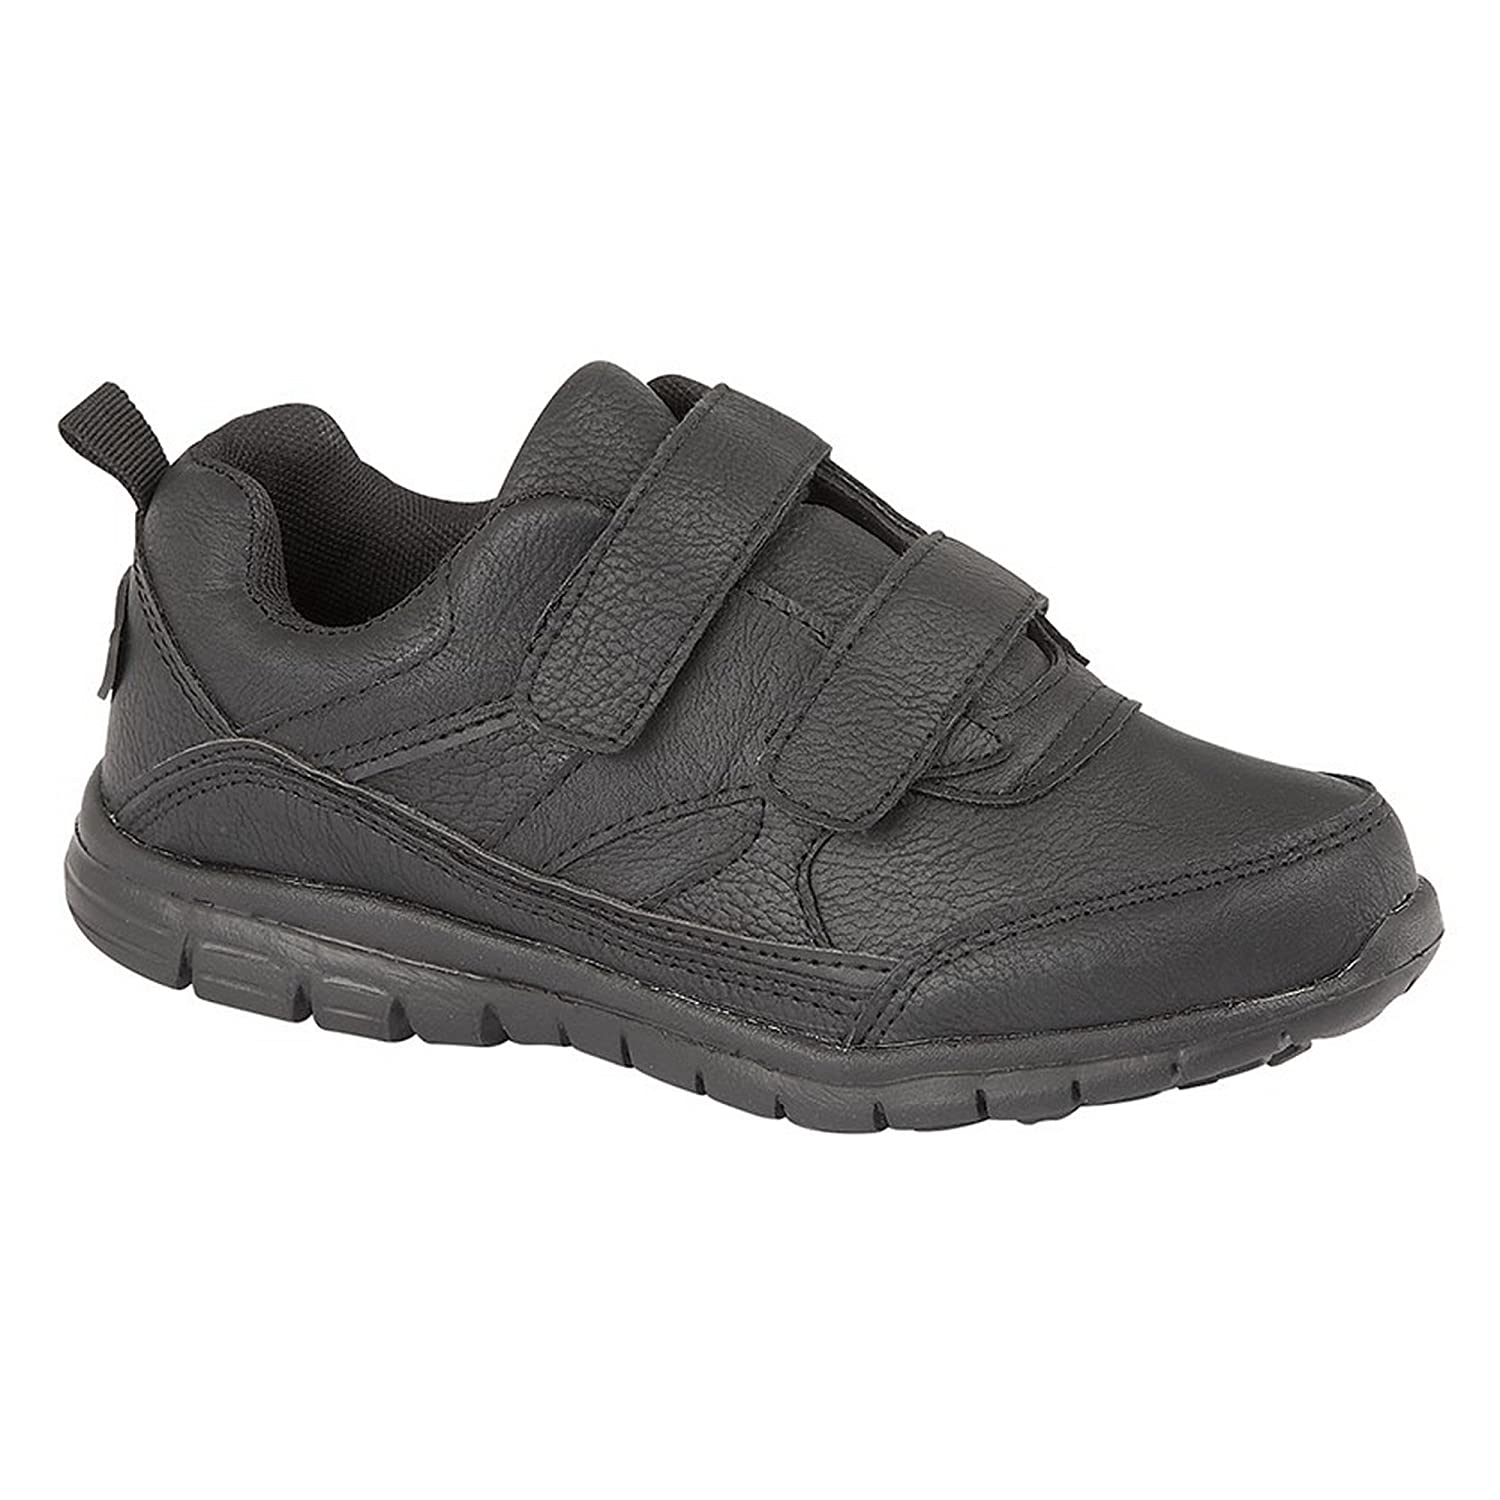 Dek Boys/Girls Air Zero Superlight Touch Fastening Trainers